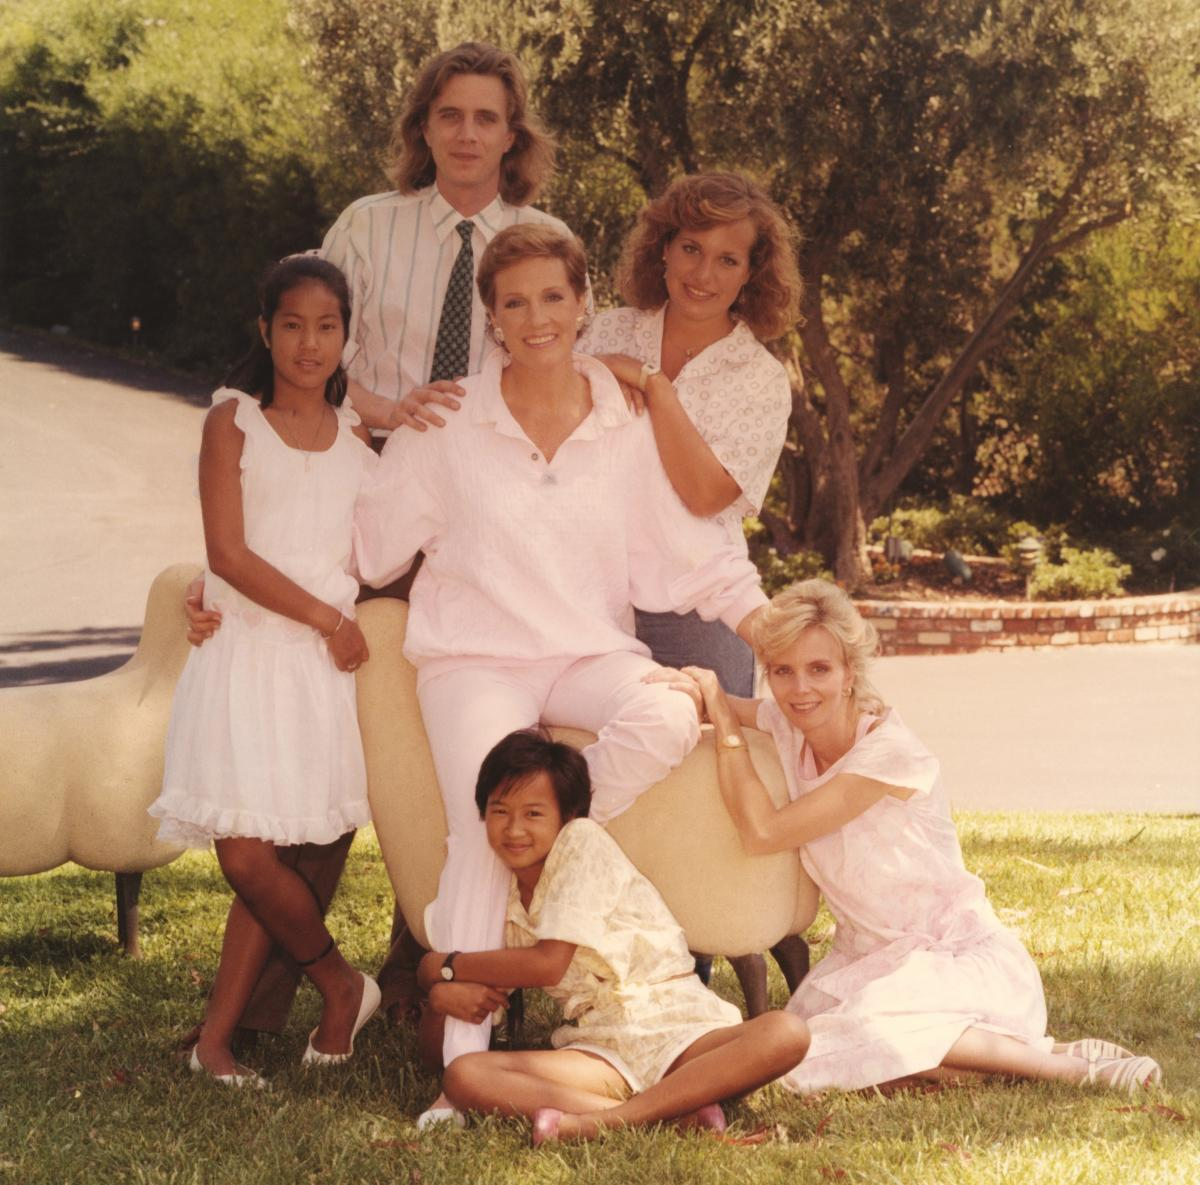 Andrews (center) poses with her children and step-children. Standing from left: Amelia, Geoff and Emma. Seated from left: Joanna and Jennifer.